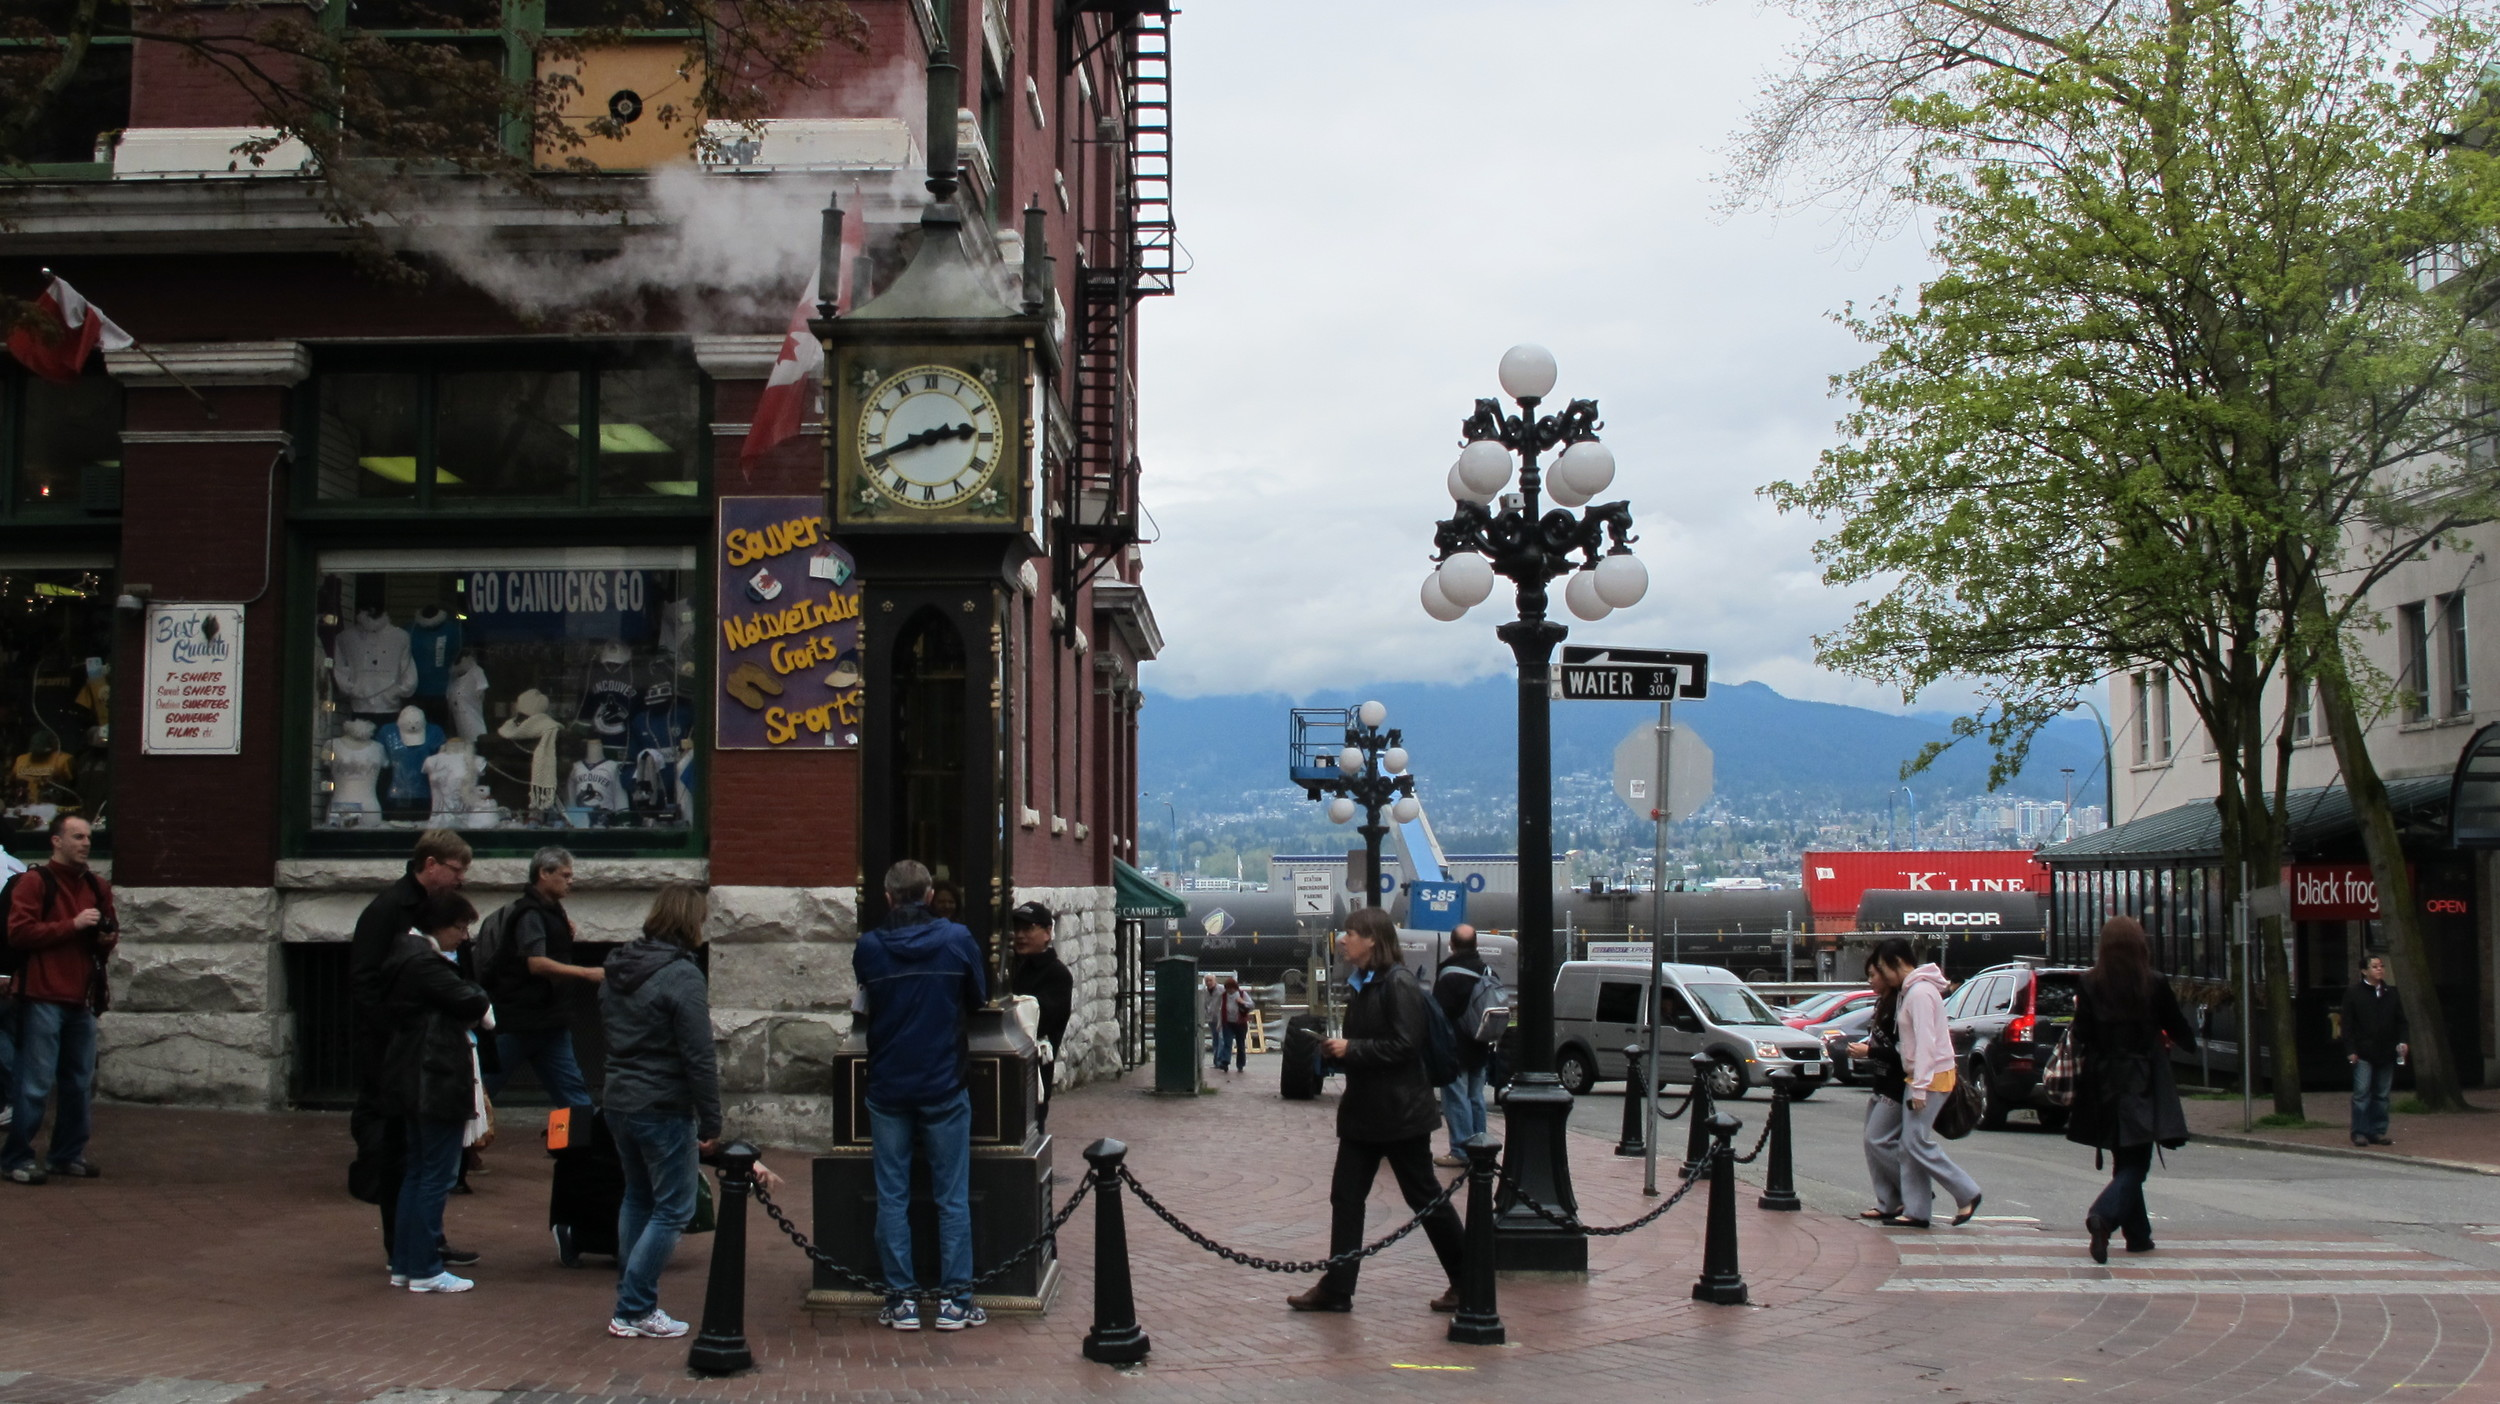 The steam clock in Gastown, one of Vancouver's oldest neighborhoods